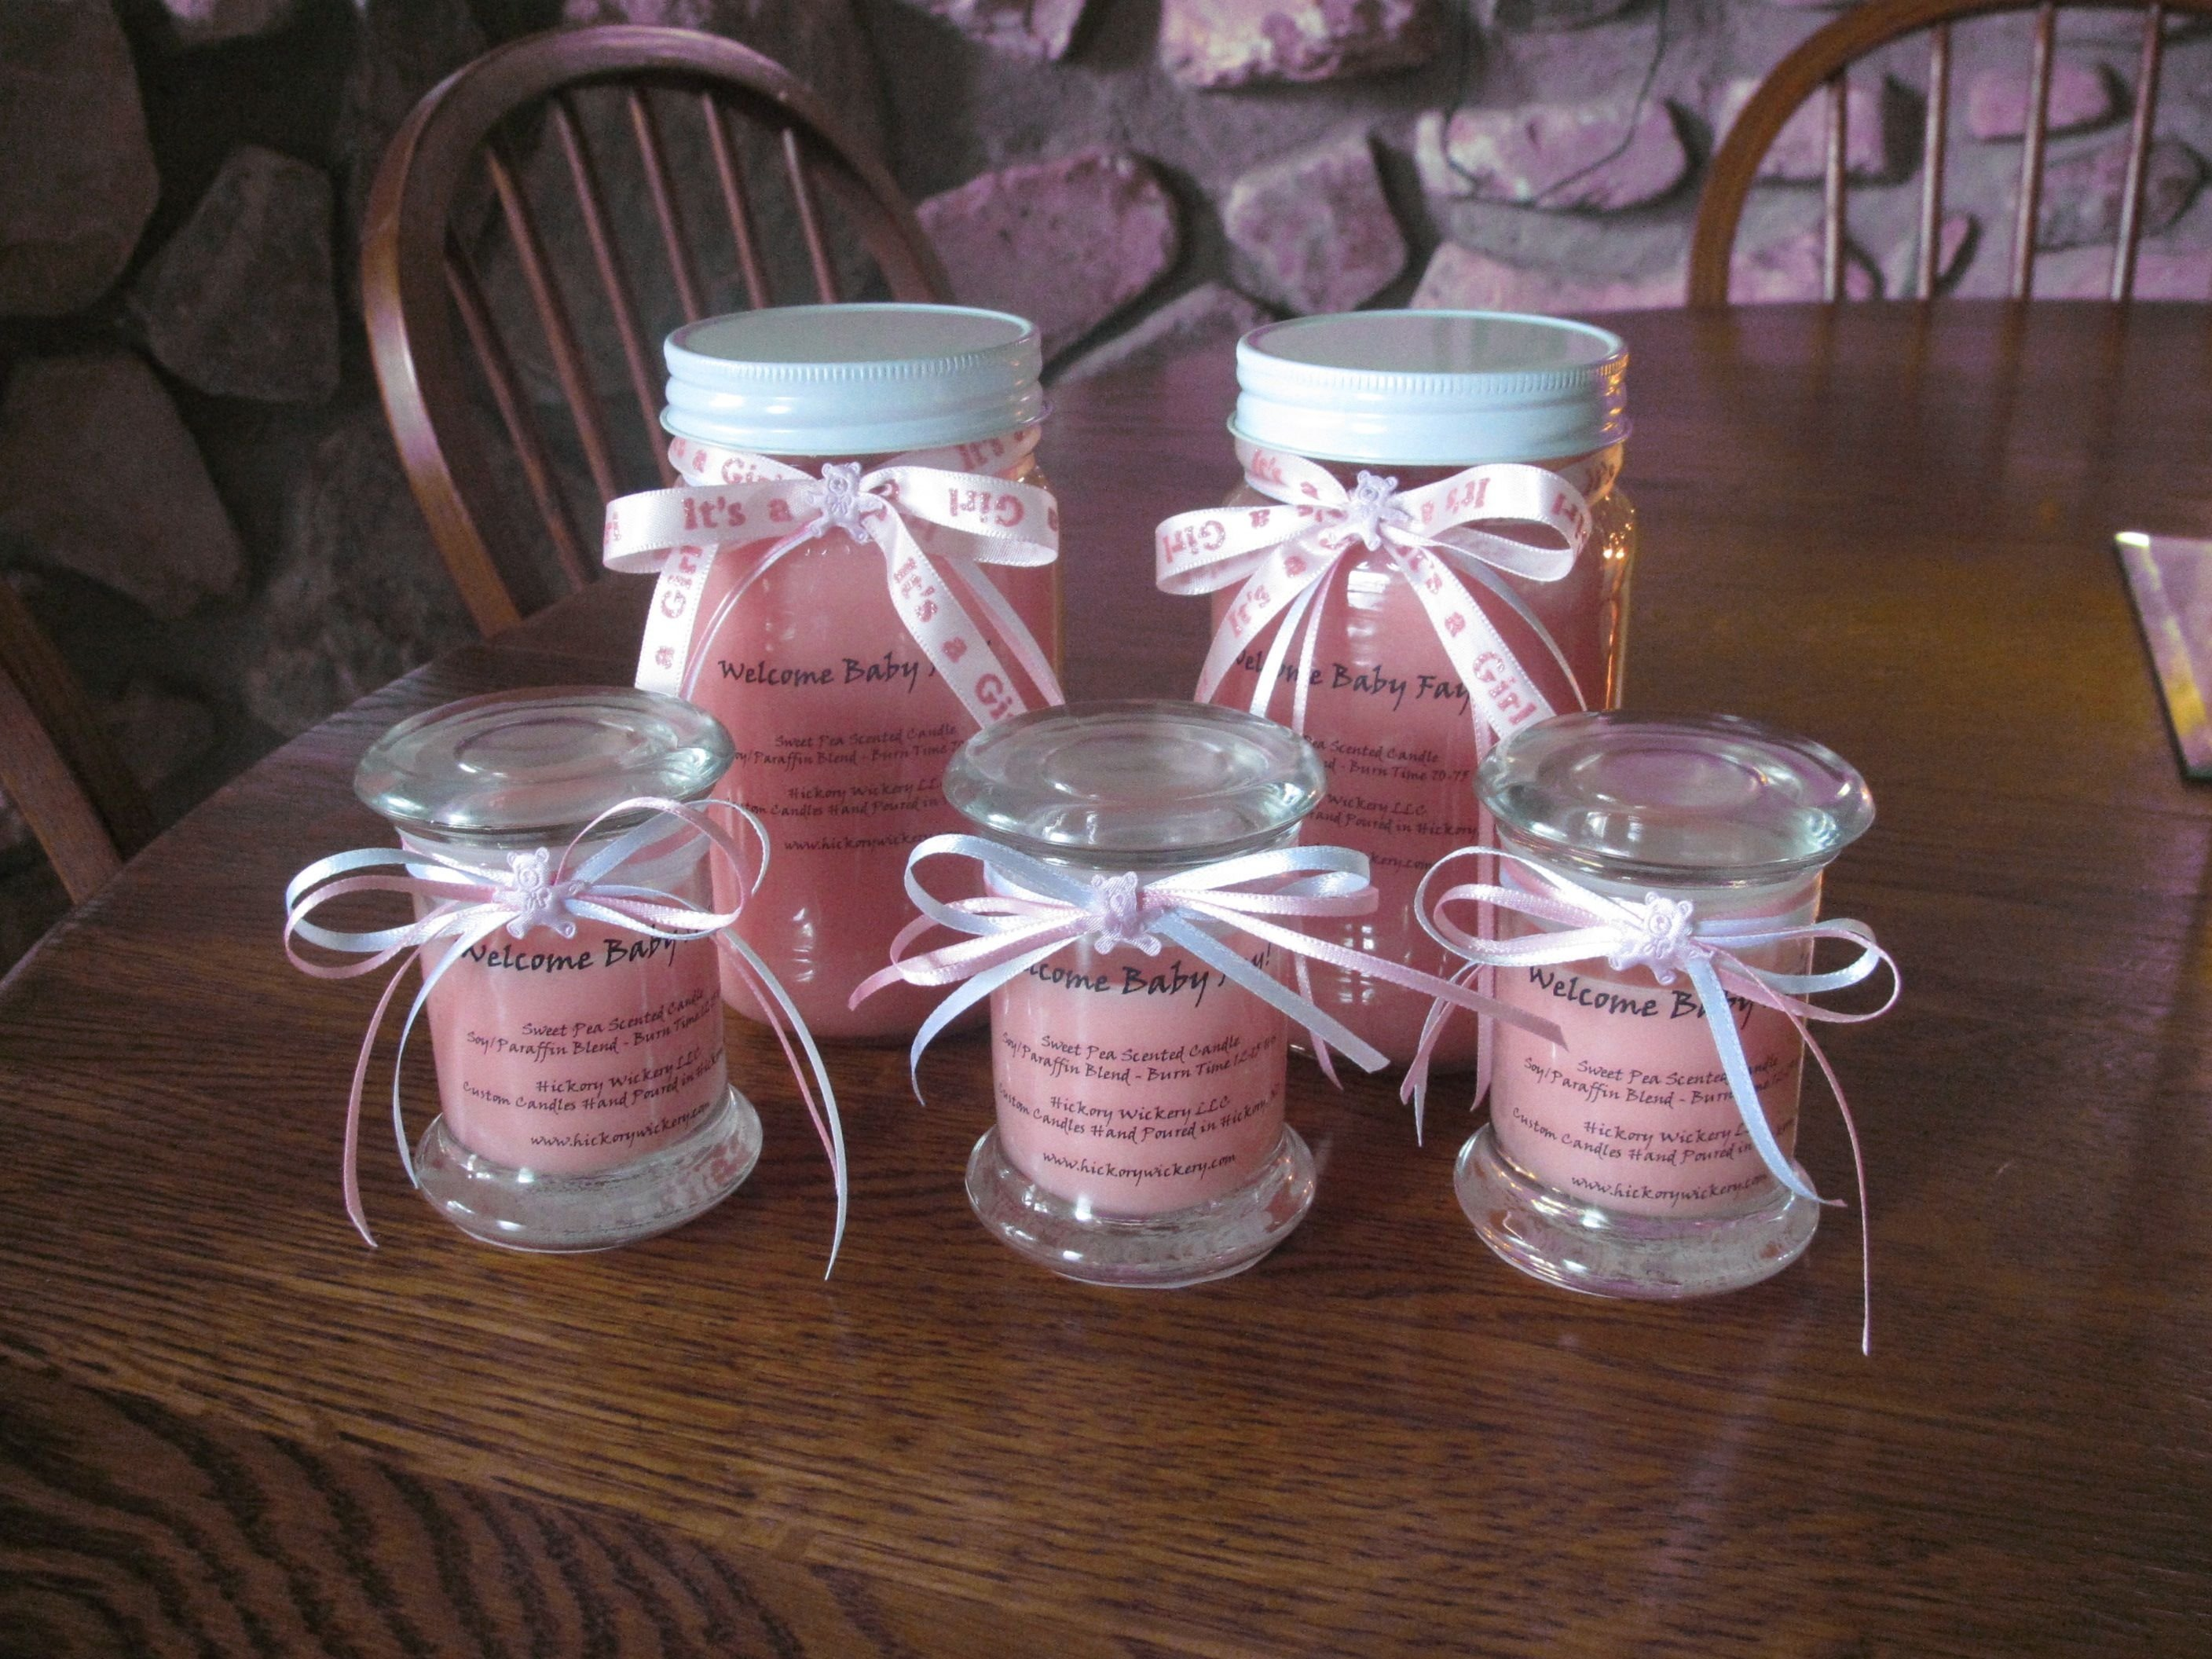 10 Best Inexpensive Baby Shower Favors Ideas baby shower ideas for girls on a budget baby shower ideas for 2